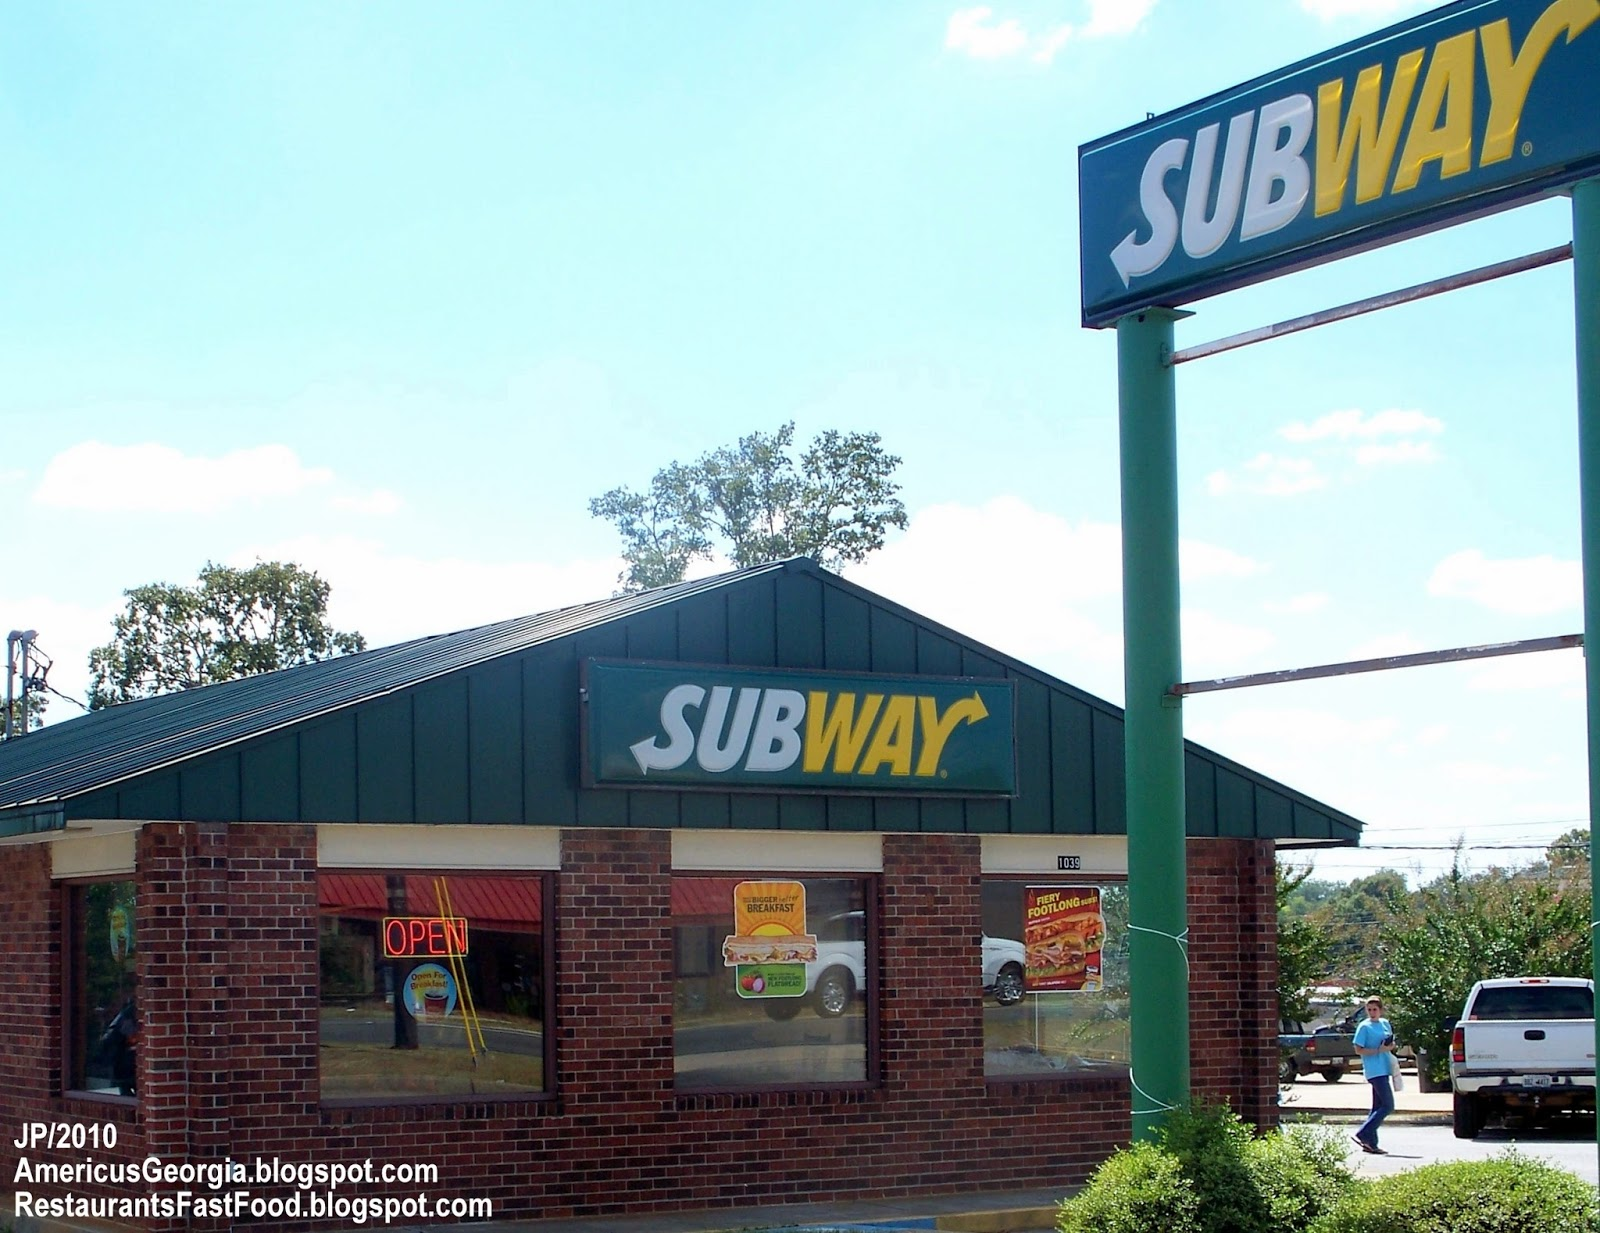 Subway Sandwiches Americus Georgia E Forsyth Street Sandwich Fast Food Restaurant Sumter County